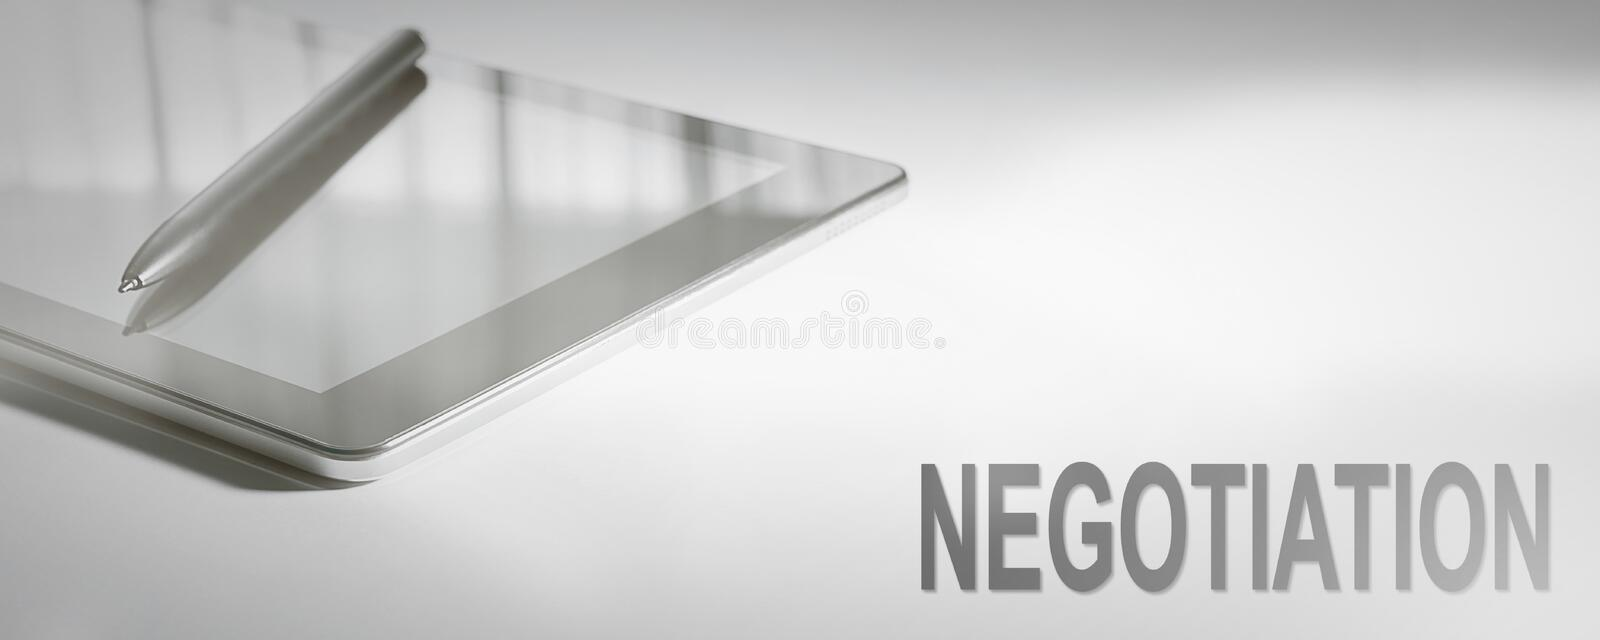 NEGOTIATION Business Concept Digital Technology. stock image